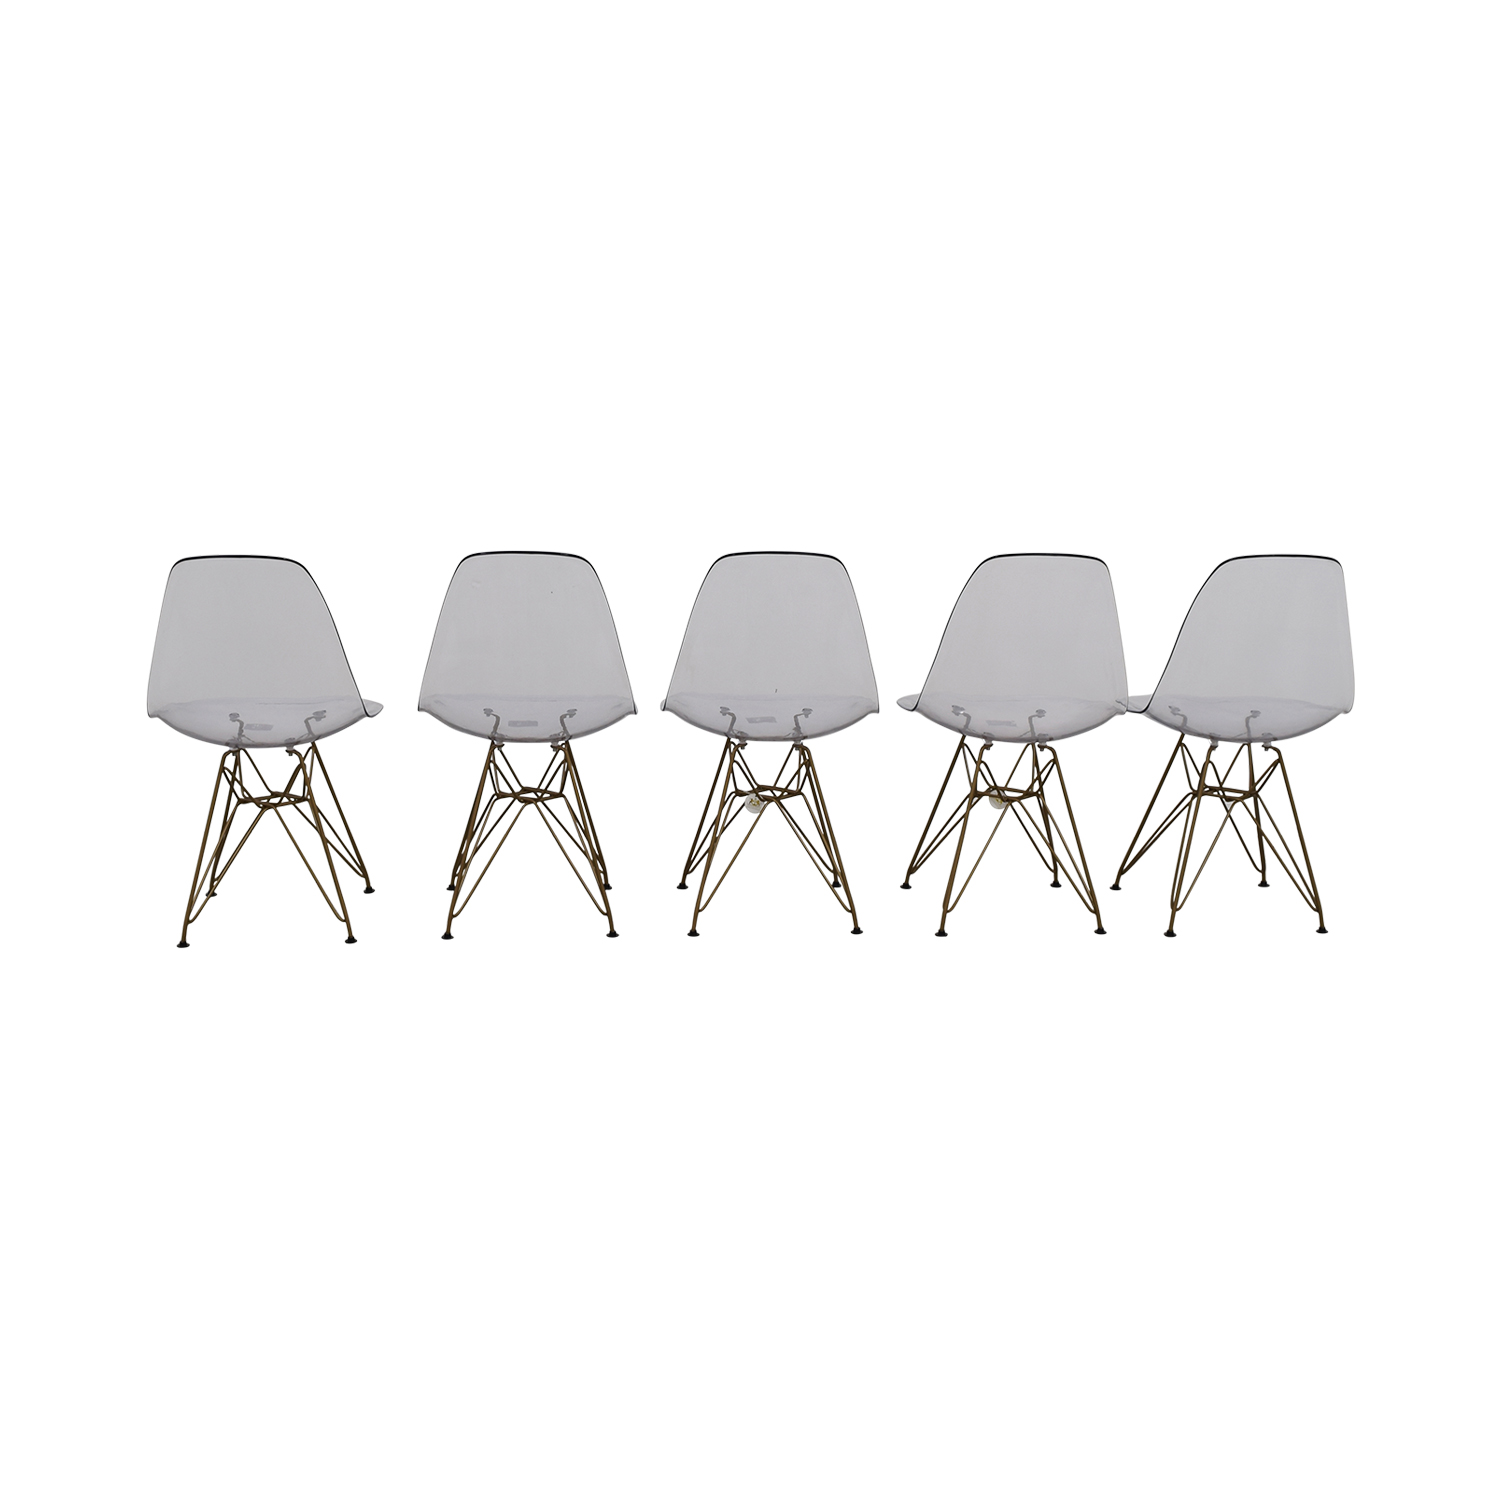 Junia Ghost Chairs / Chairs